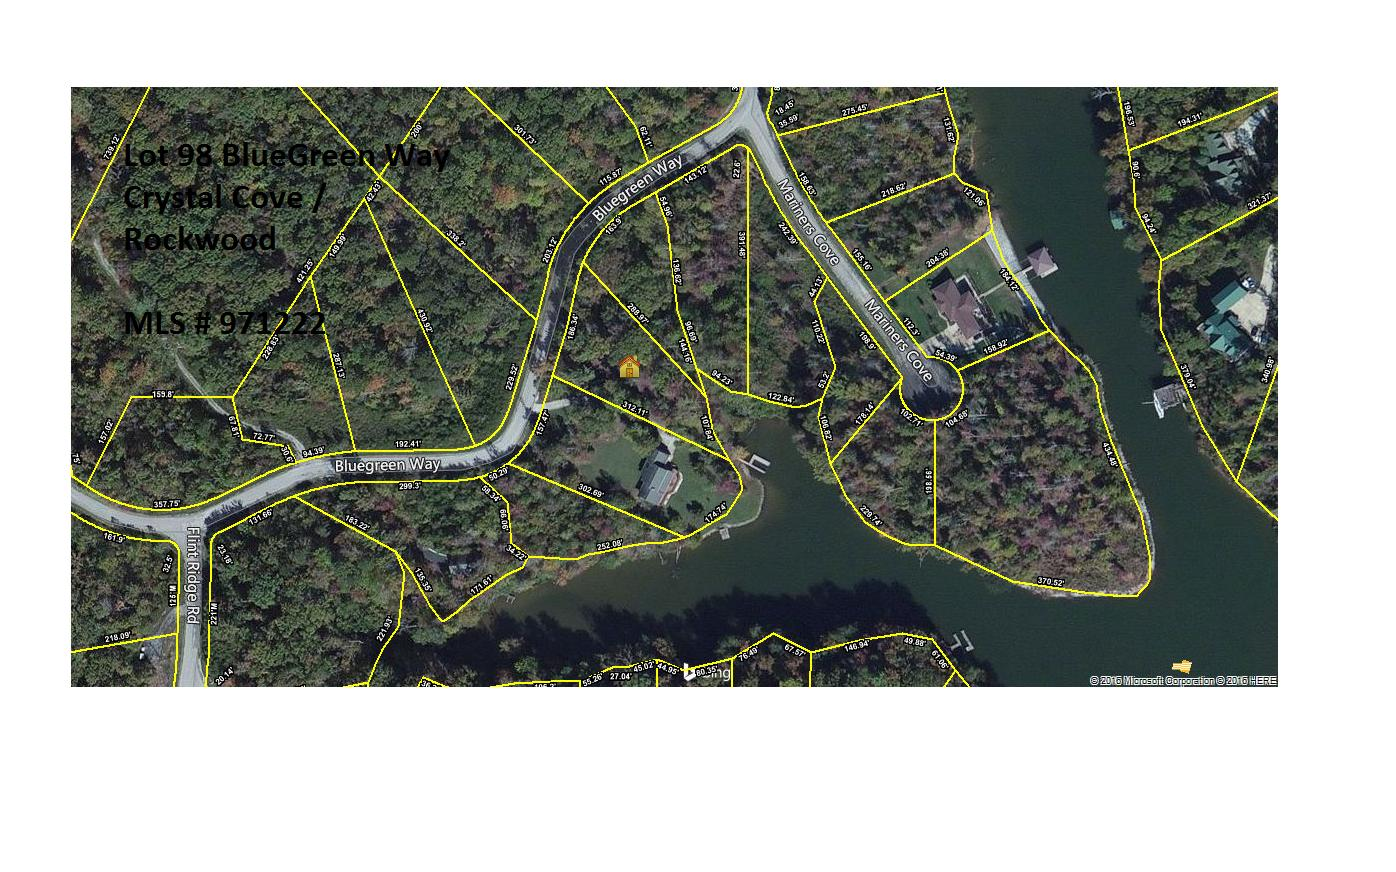 Lot 98 Bluegreen- Rockwood- Tennessee- United States 37854, ,Lots & Acreage,For Sale,Bluegreen,1045438